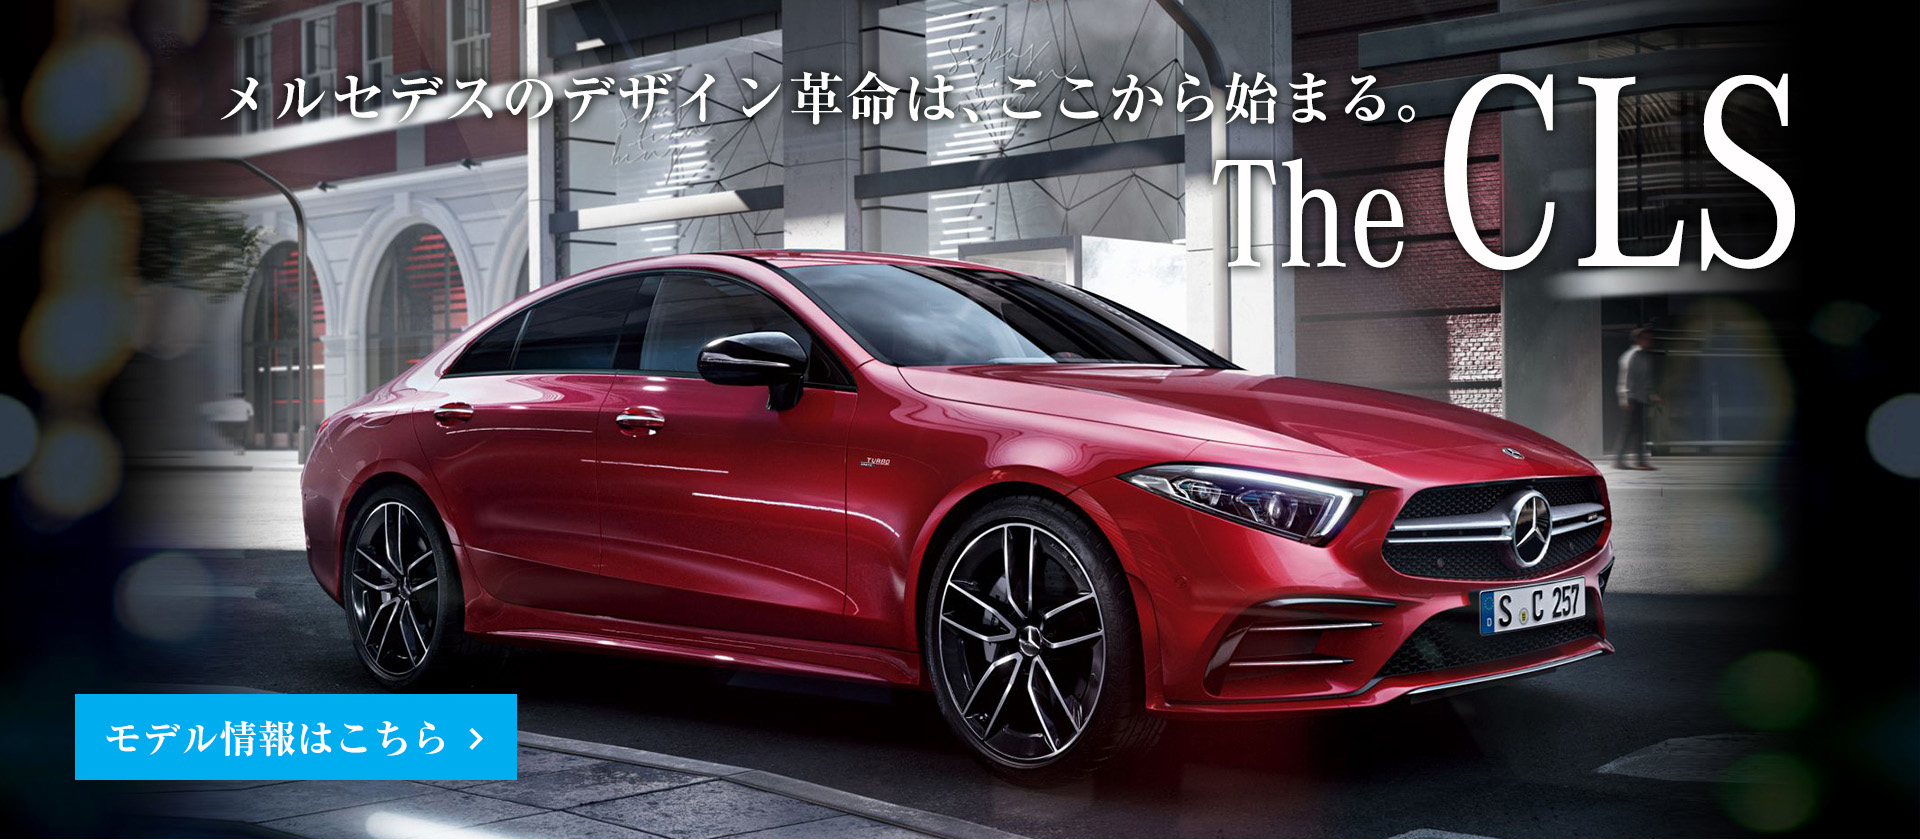 The new CLS